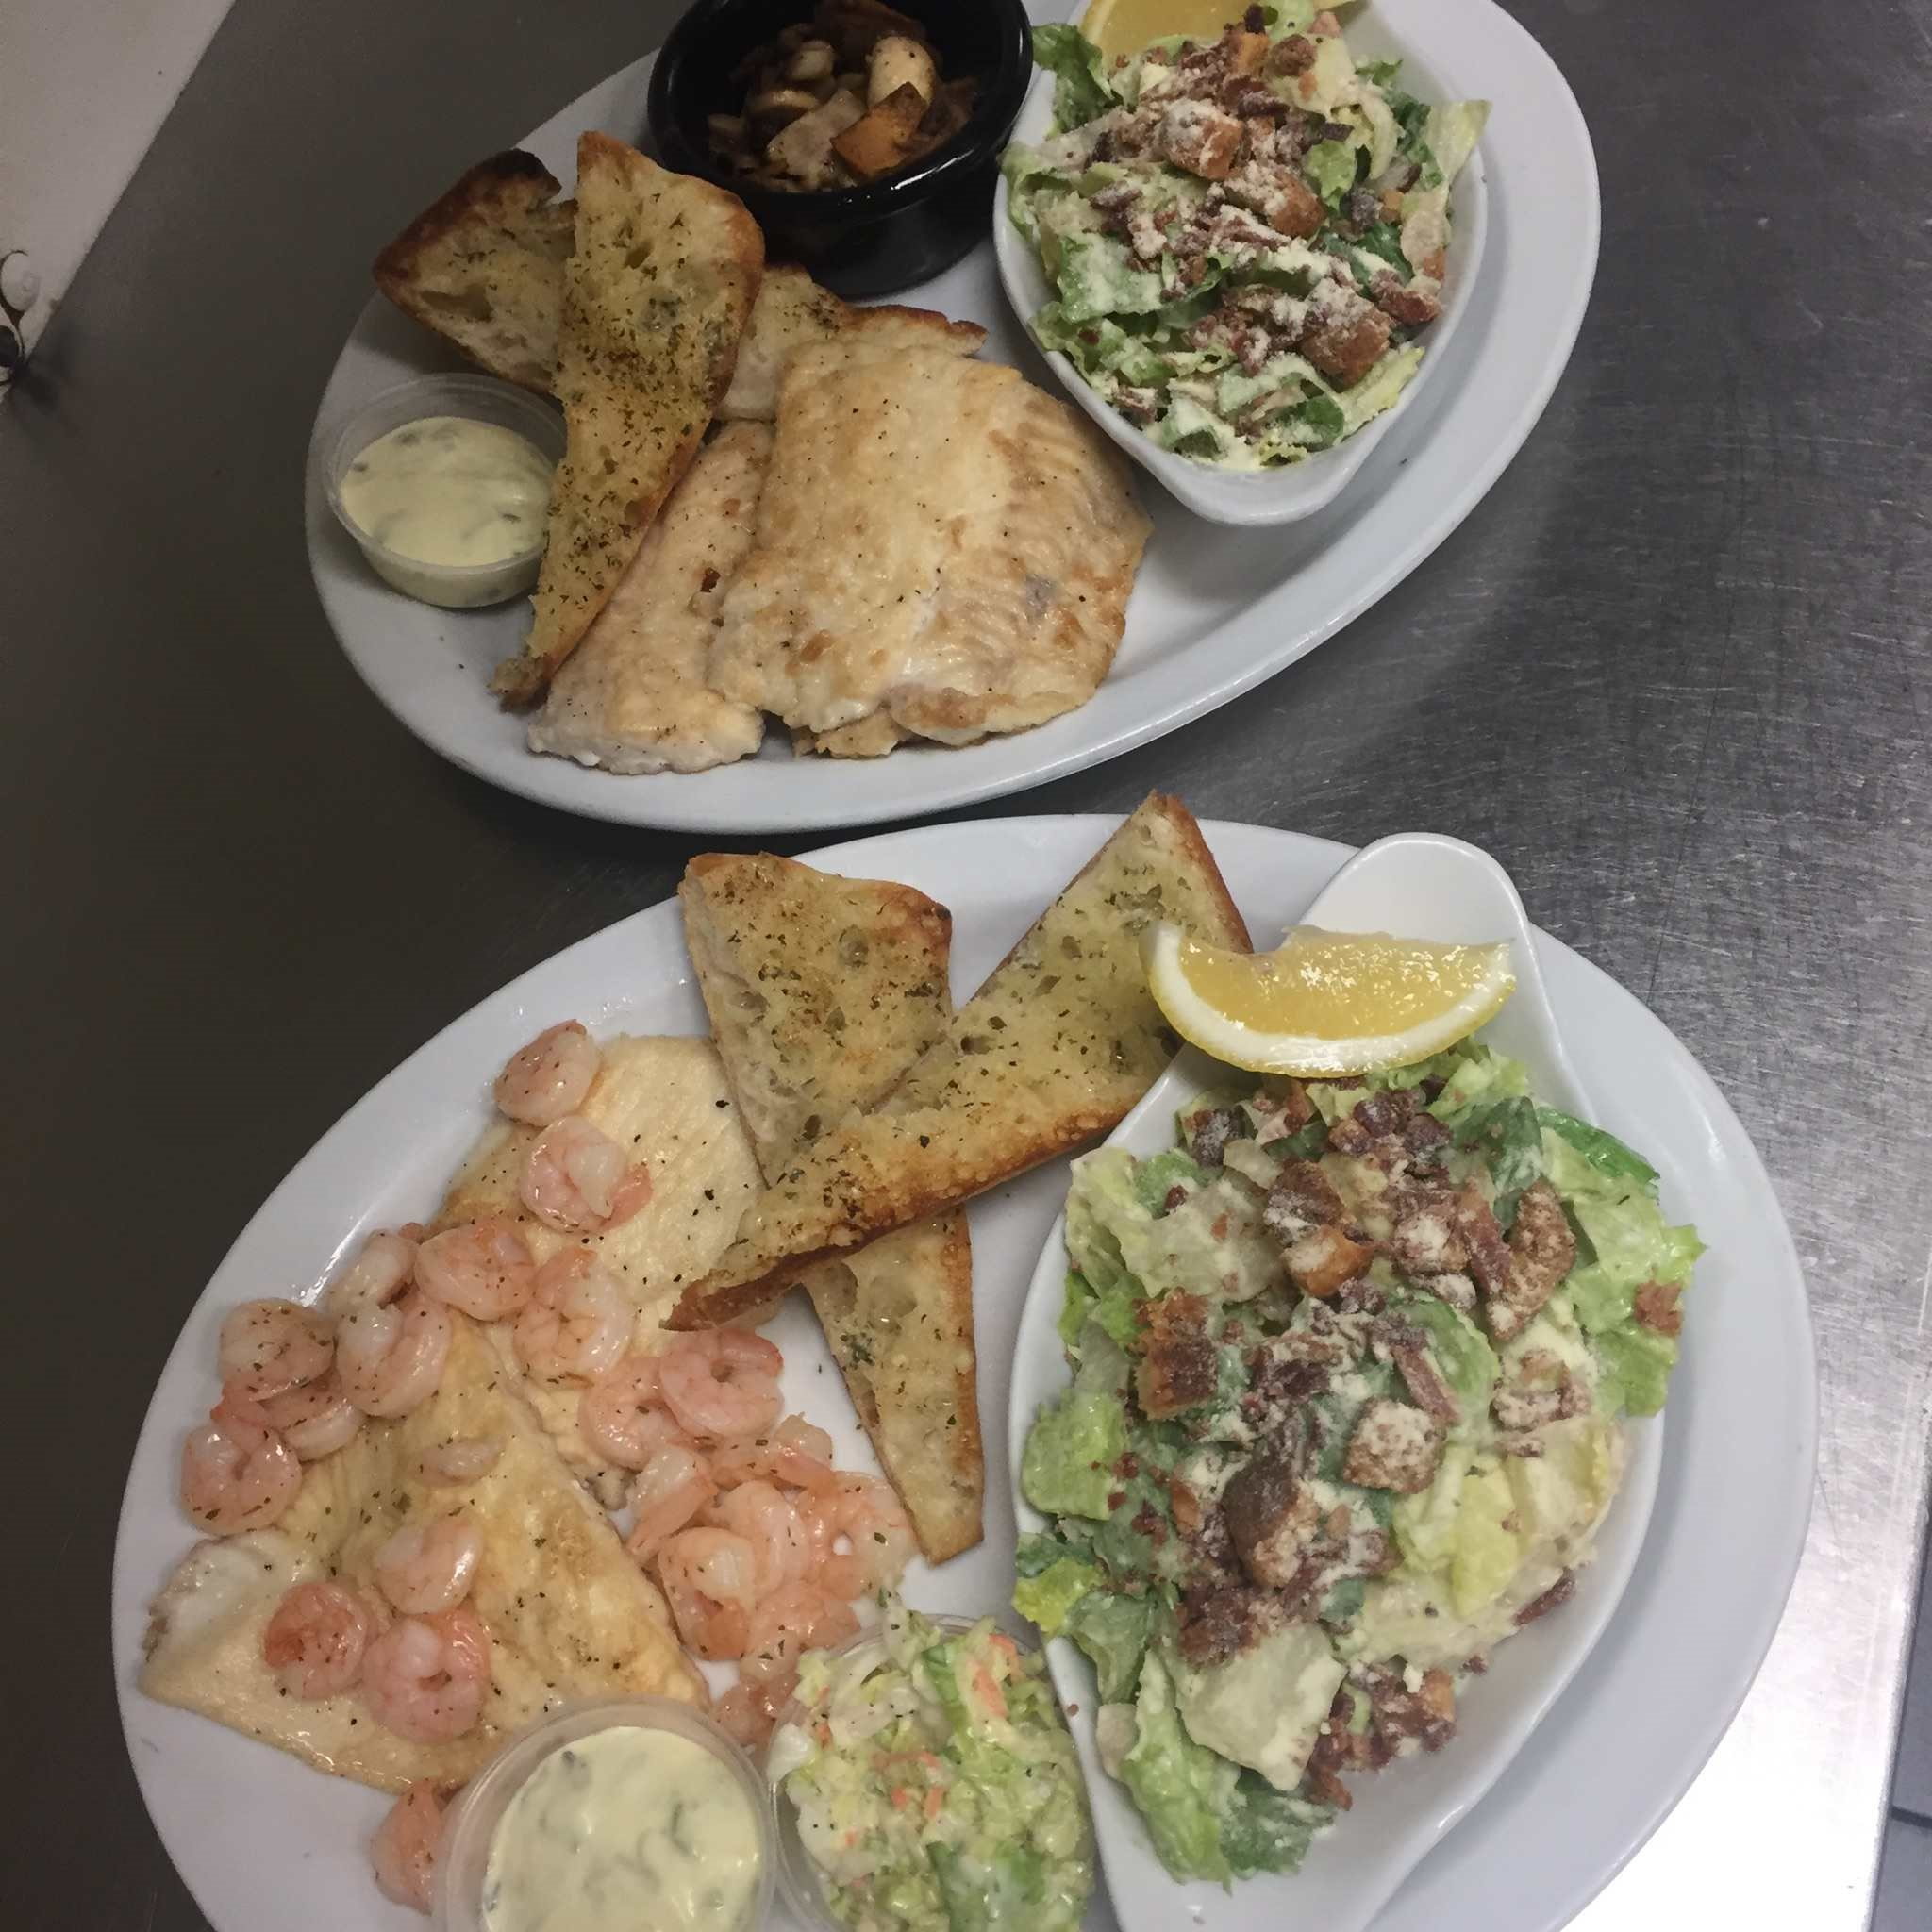 Picture of salad, shrimp and fish